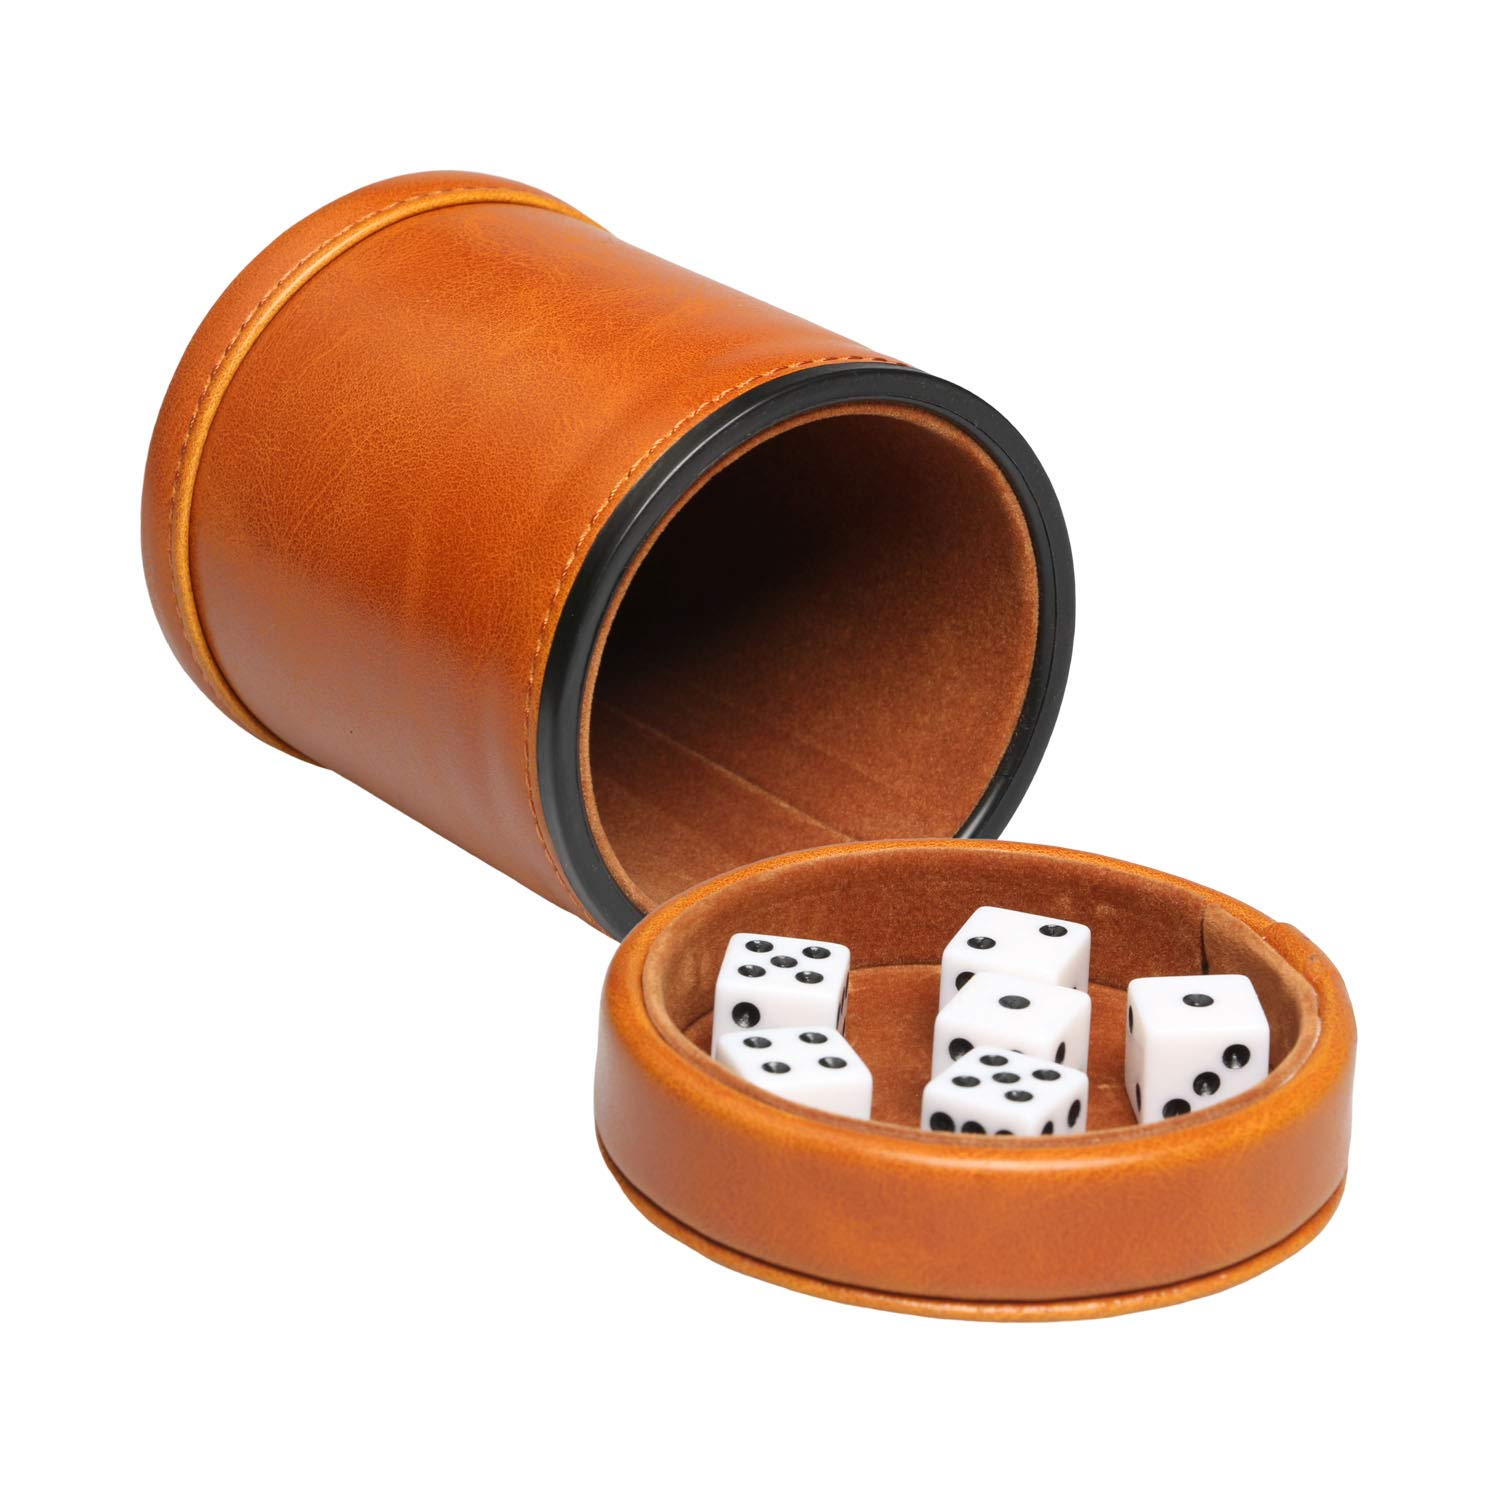 RERIVER Leatherette Dice Cup with Lid Includes 6 Dices, Velvet Interior Quiet in Shaking for Liars Dice Farkle Yahtzee Board Games, Brown by RERIVER